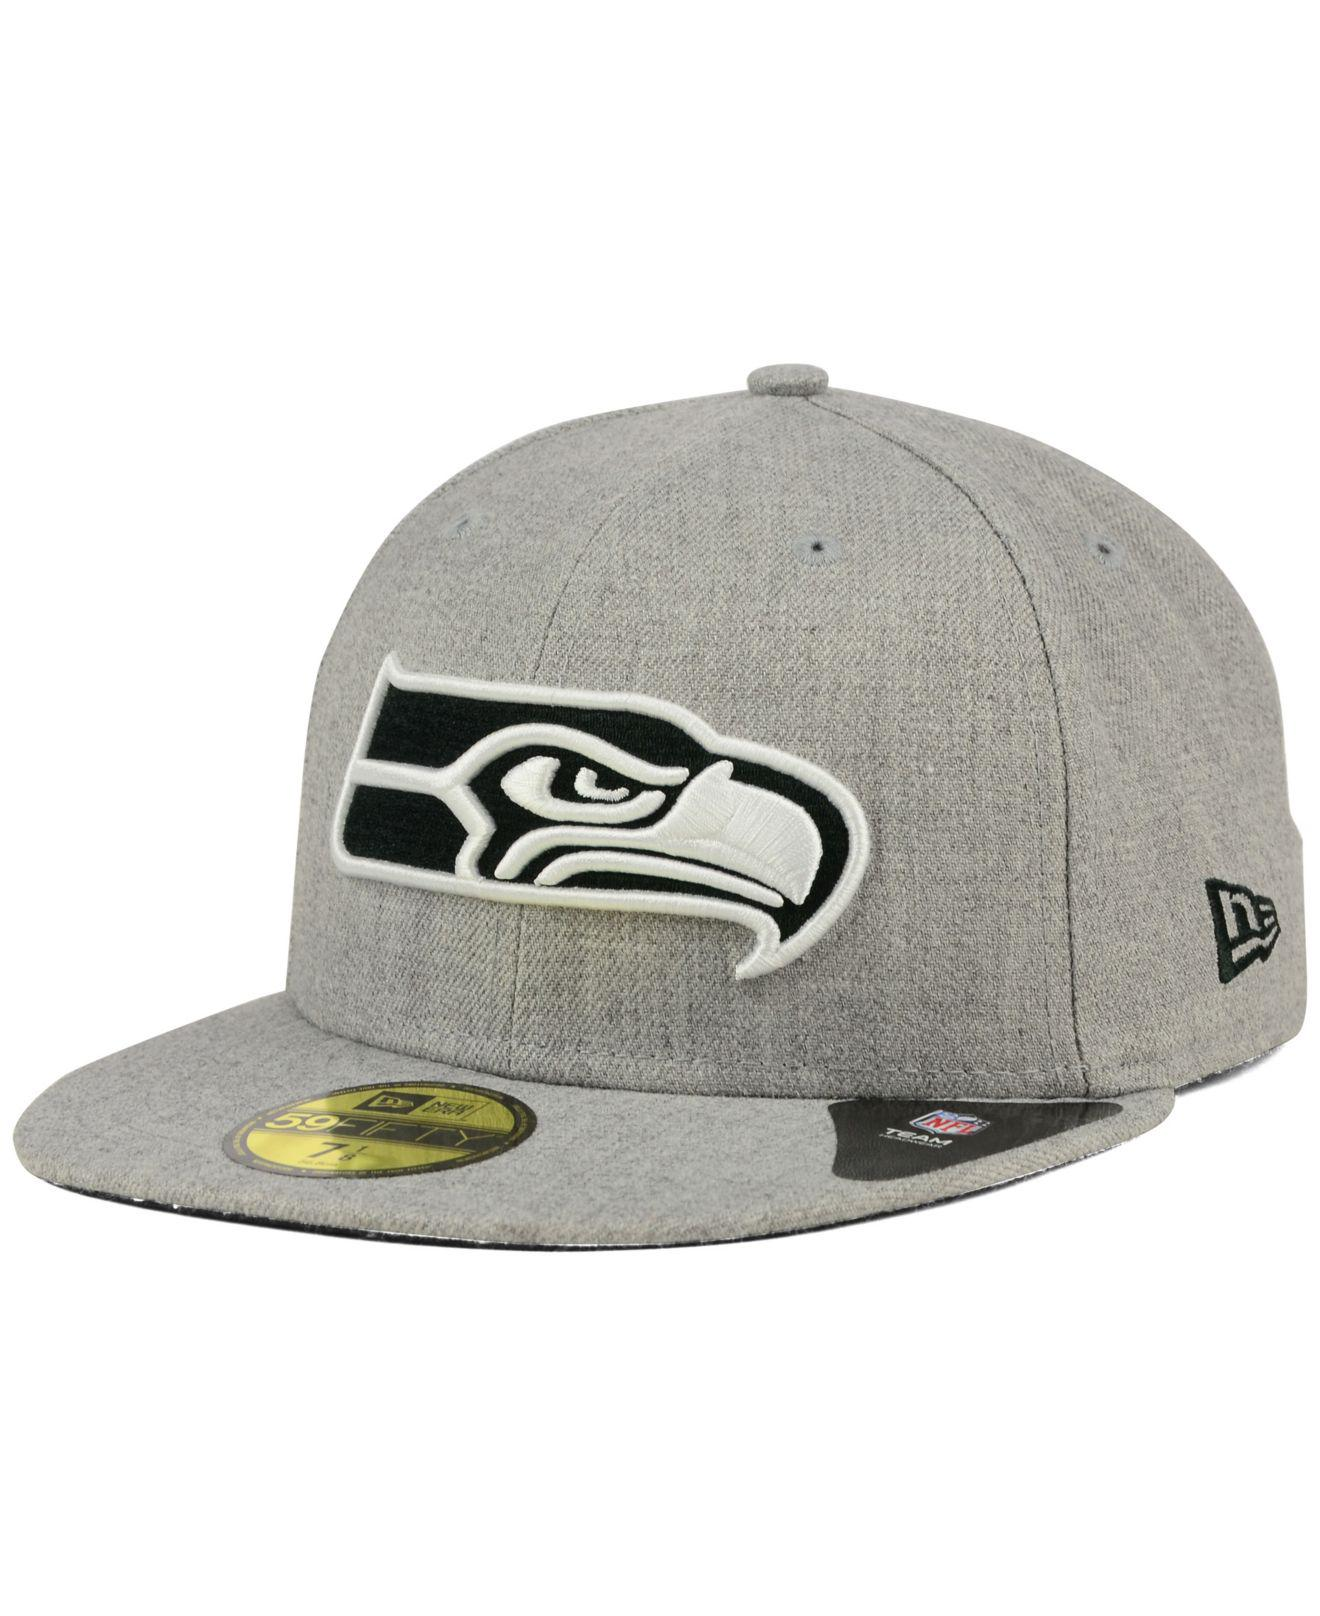 bcf6afef326a06 ... czech ktz gray seattle seahawks heather black white 59fifty cap for men  lyst. view fullscreen